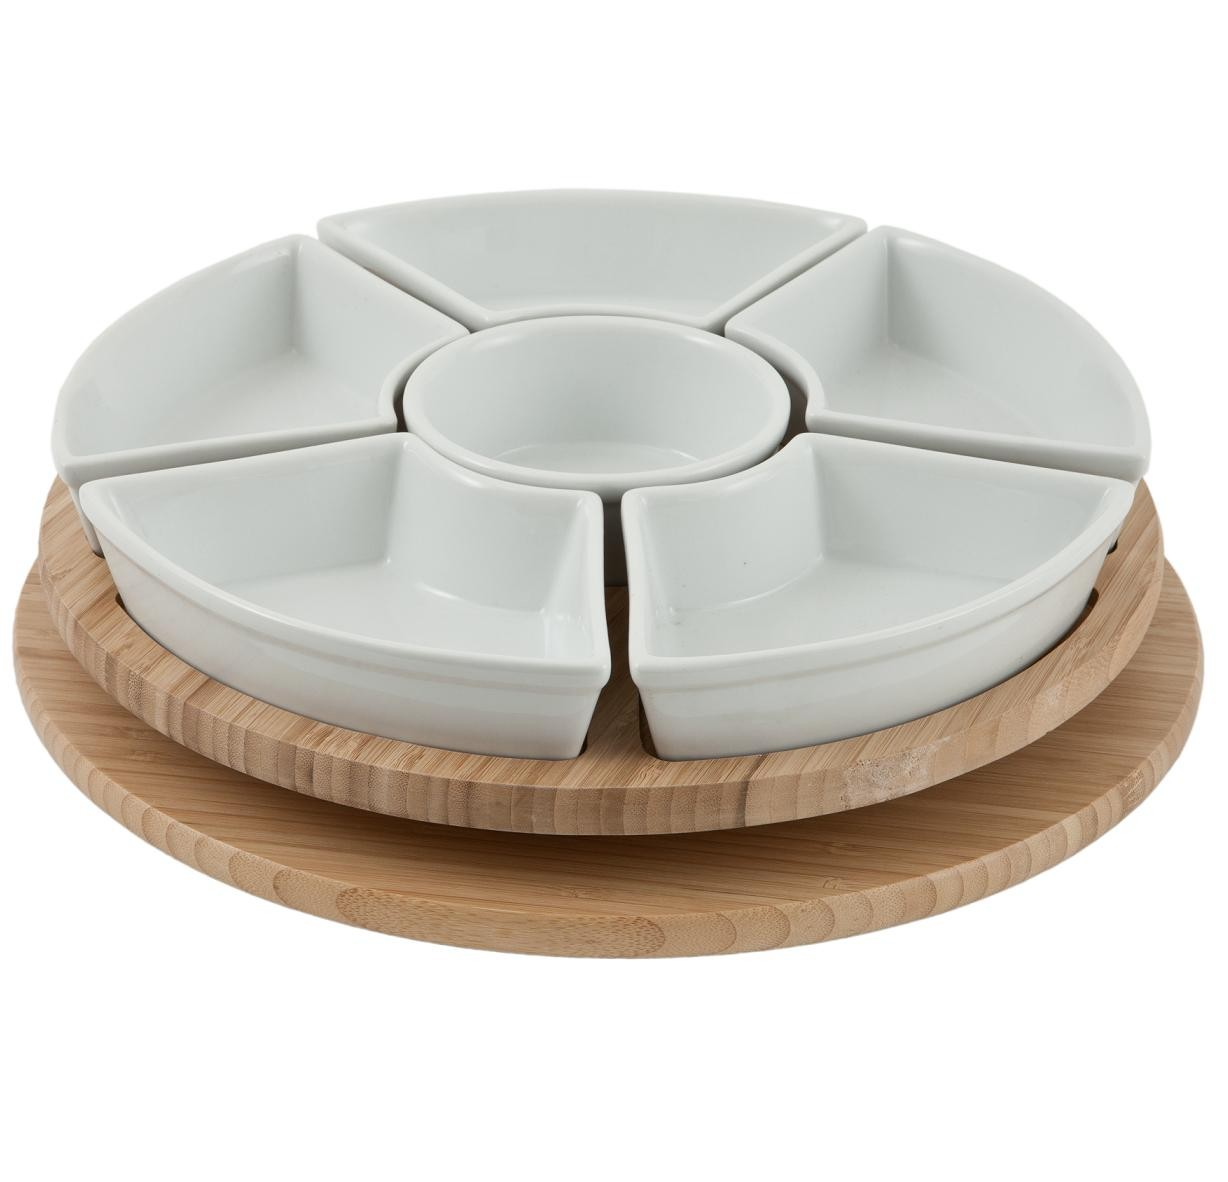 bamboo-setof6-ceramic-dishes